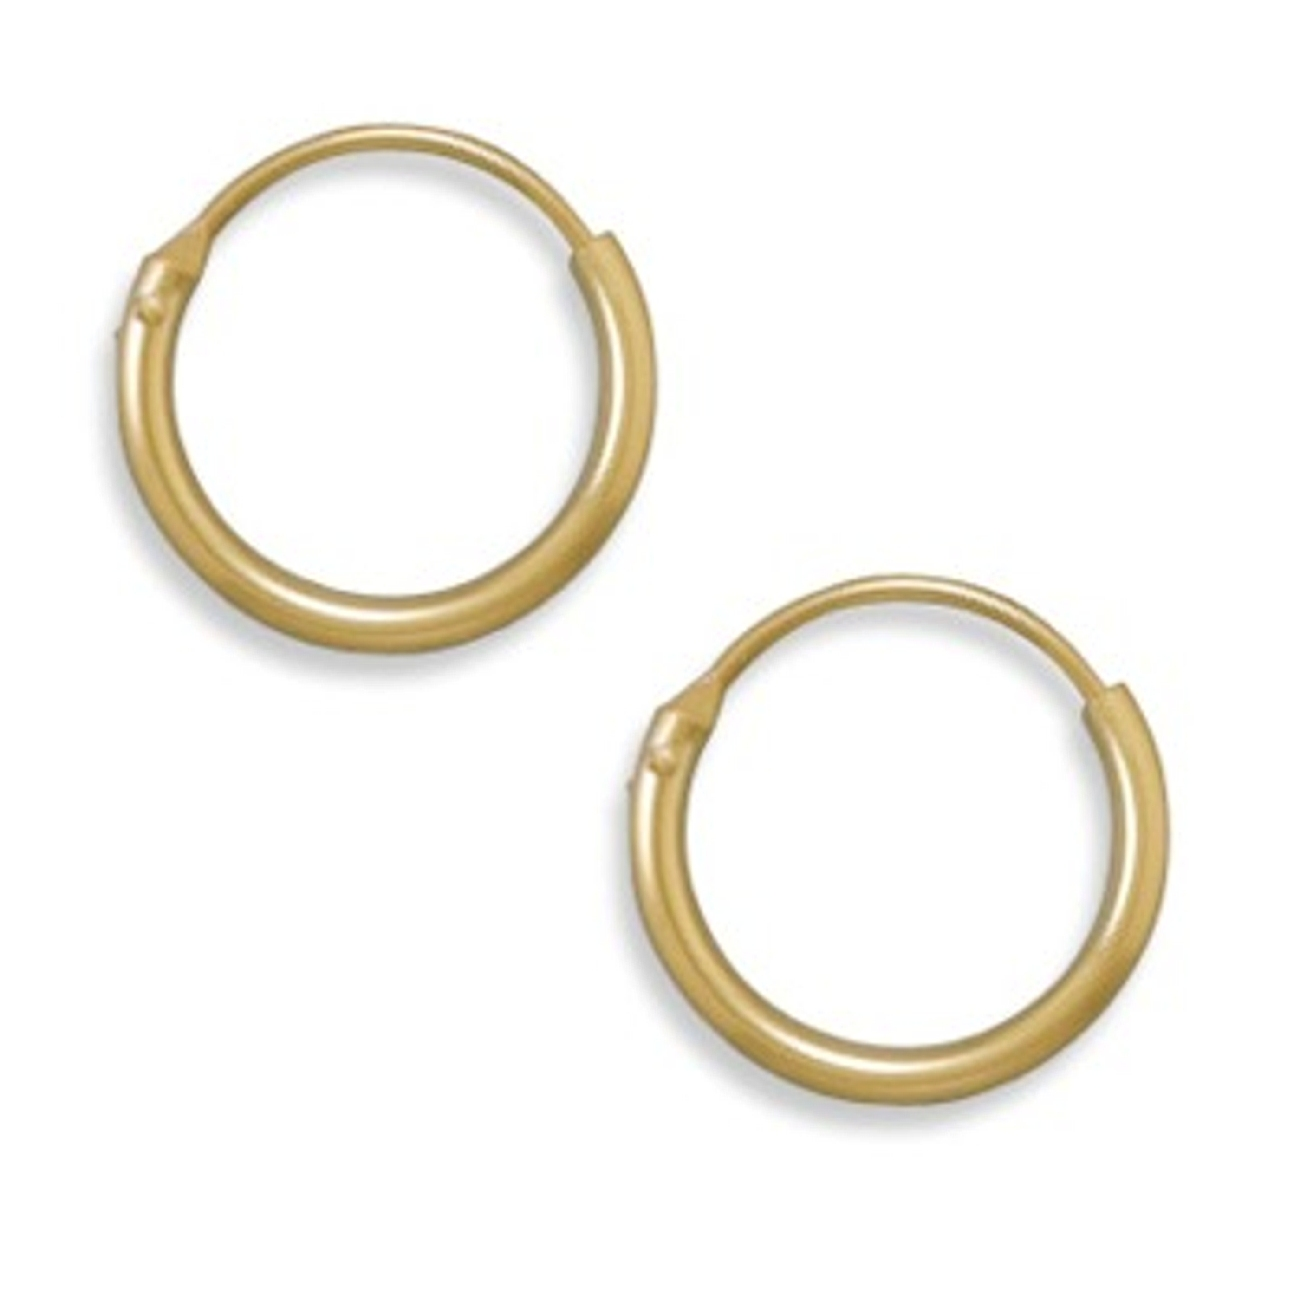 13mm Diameter 12/20 Gold Filled Endless Hoop Earrings